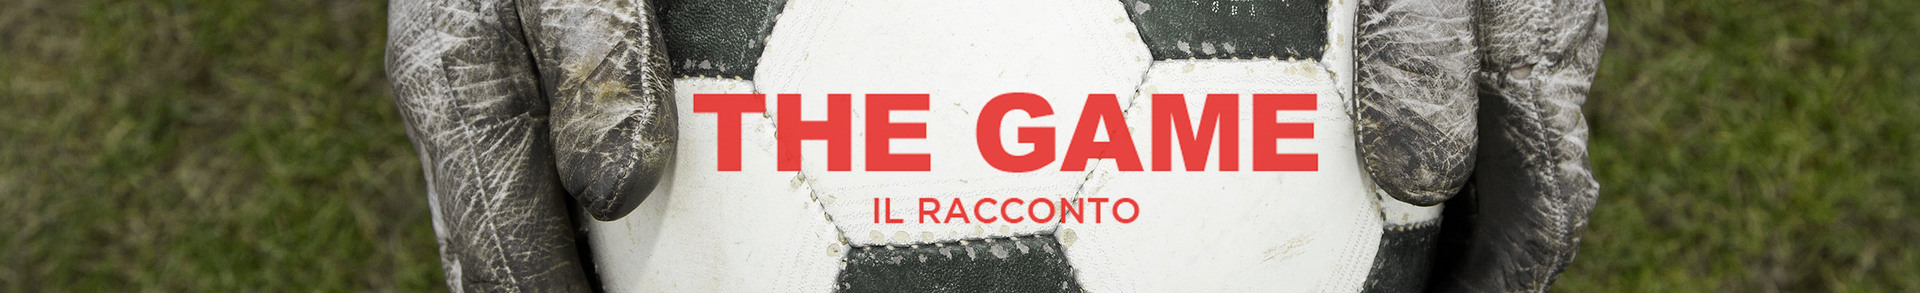 "SIENA PREVIEW FOR ""THE GAME"" BY DANILO CORREALE – WINNER OF THE 14th EDITION OF THE ERMANNO CASOLI PRIZE"